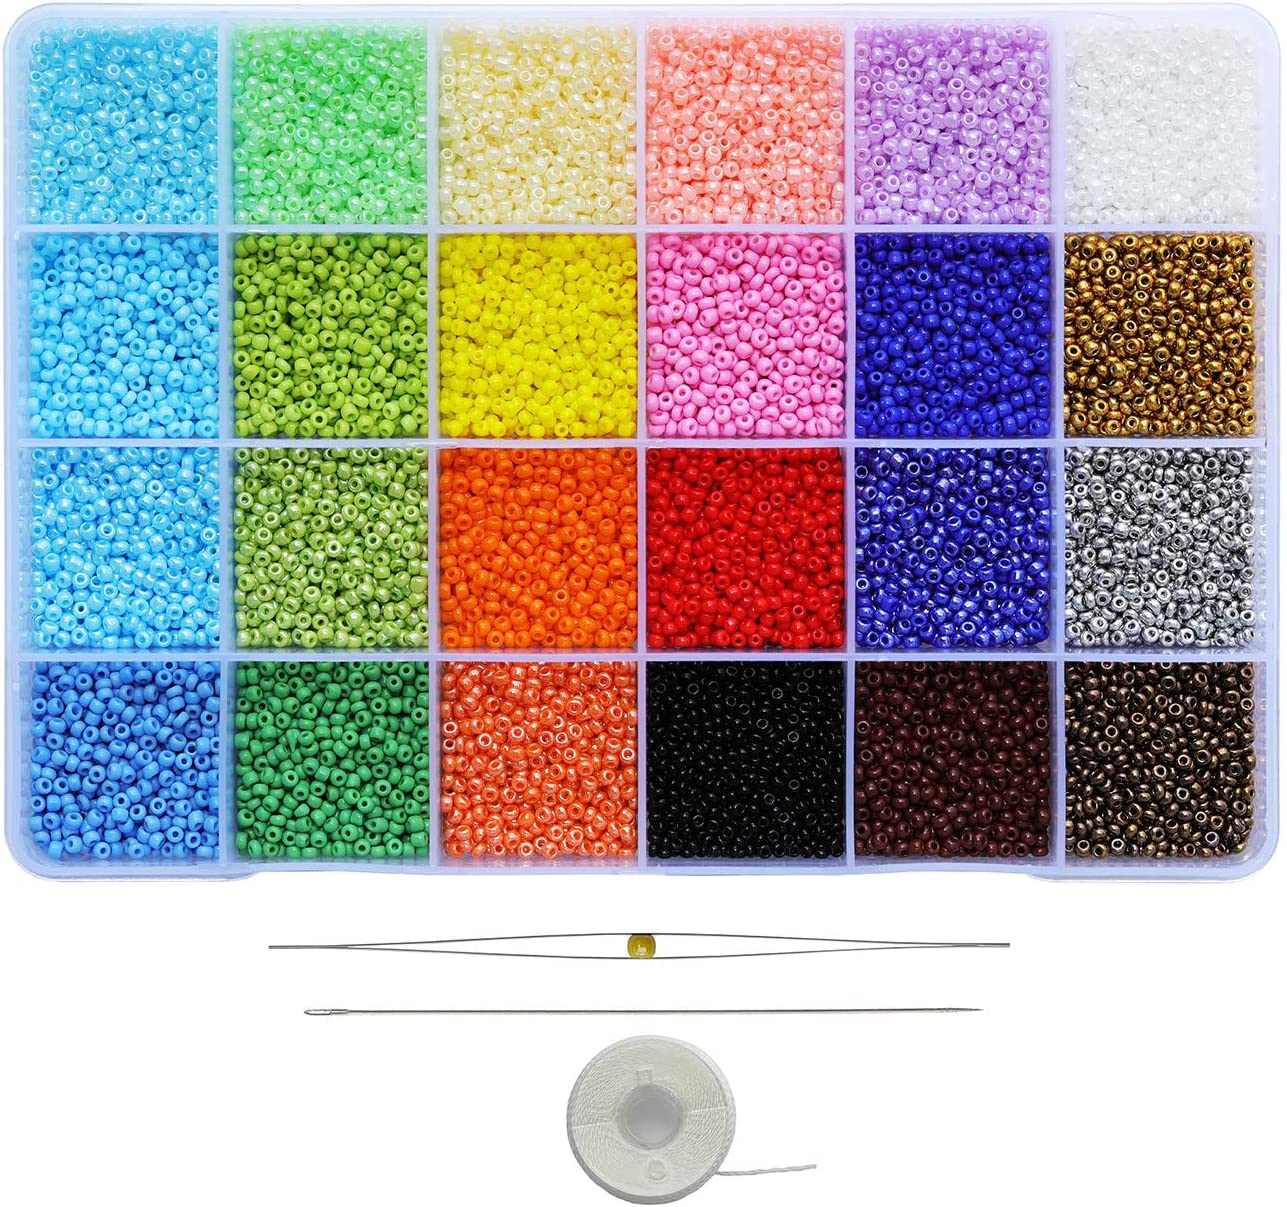 About 650pcs//Color, 24 Colors Bala/&Fillic Size 11//0 Glass Seed Beads About 15600pcs in Box 24 Multicolor Assortment Craft Seed Beads for Jewelry Making